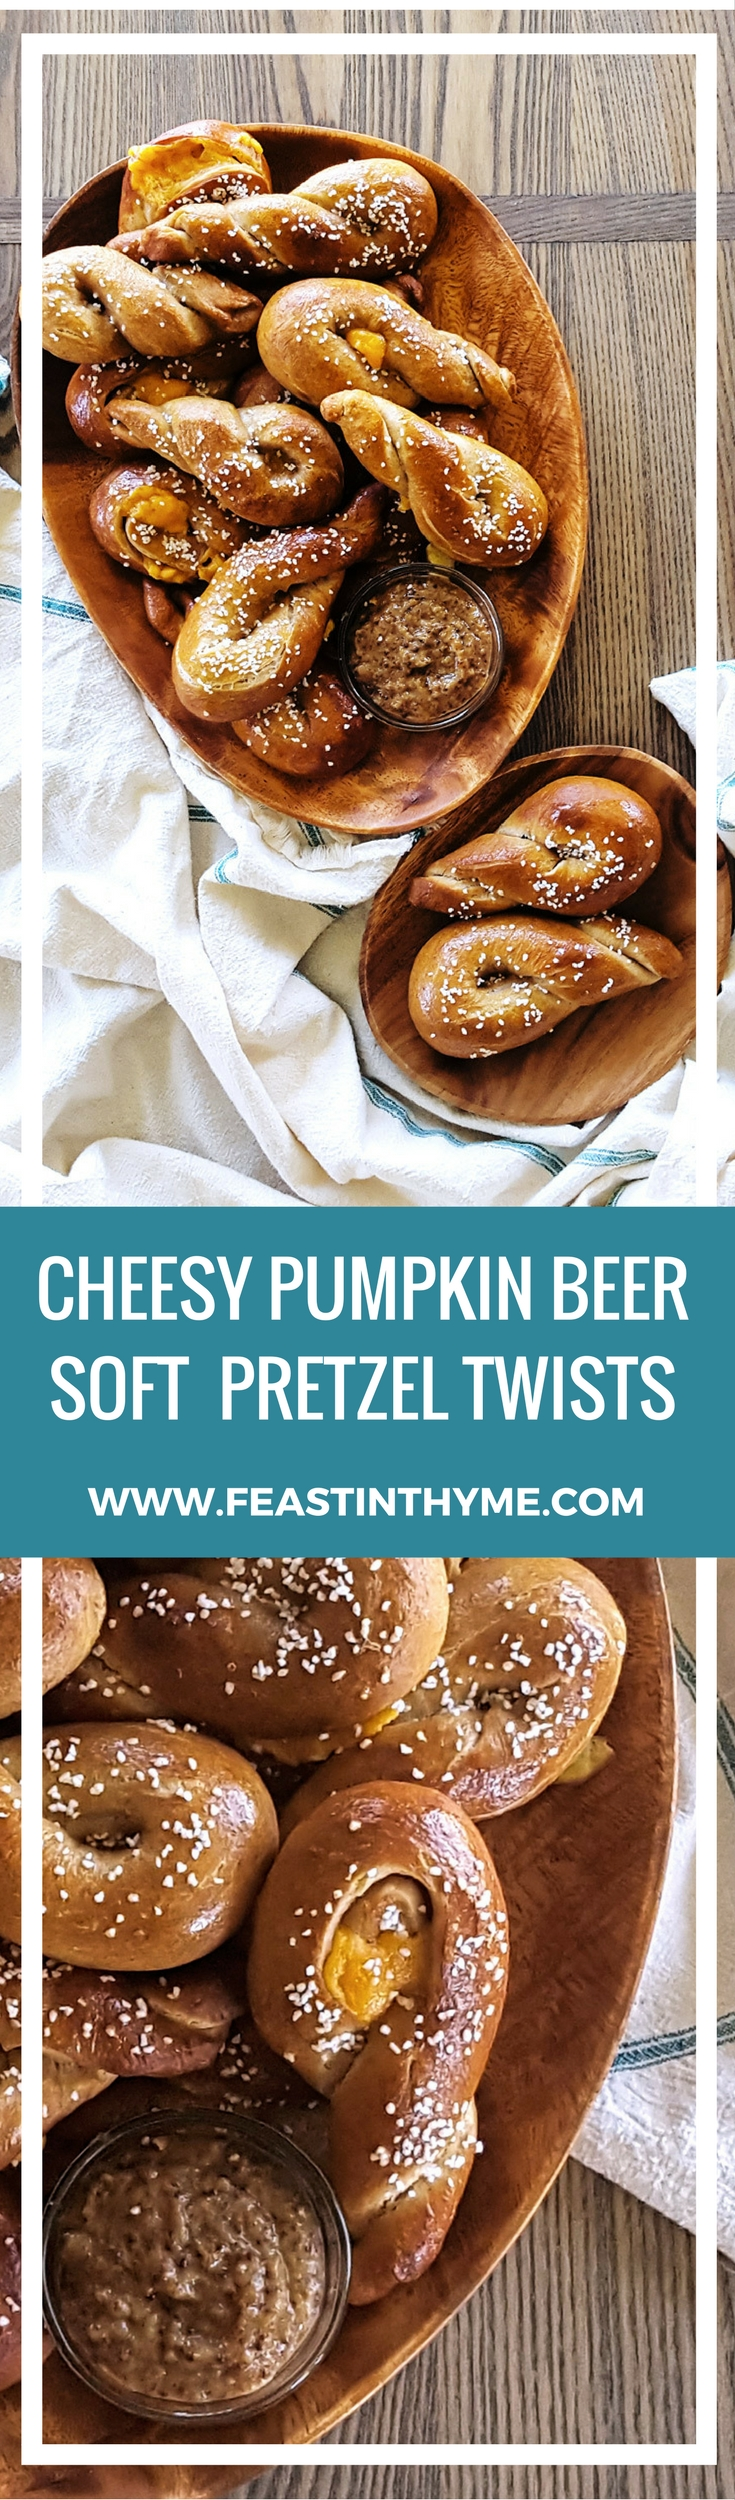 Stuffed with extra sharp cheddar, these Cheesy Pumpkin Beer Soft Pretzel Twists are meant to be shared at your next party or game day!   FeastInThyme.com